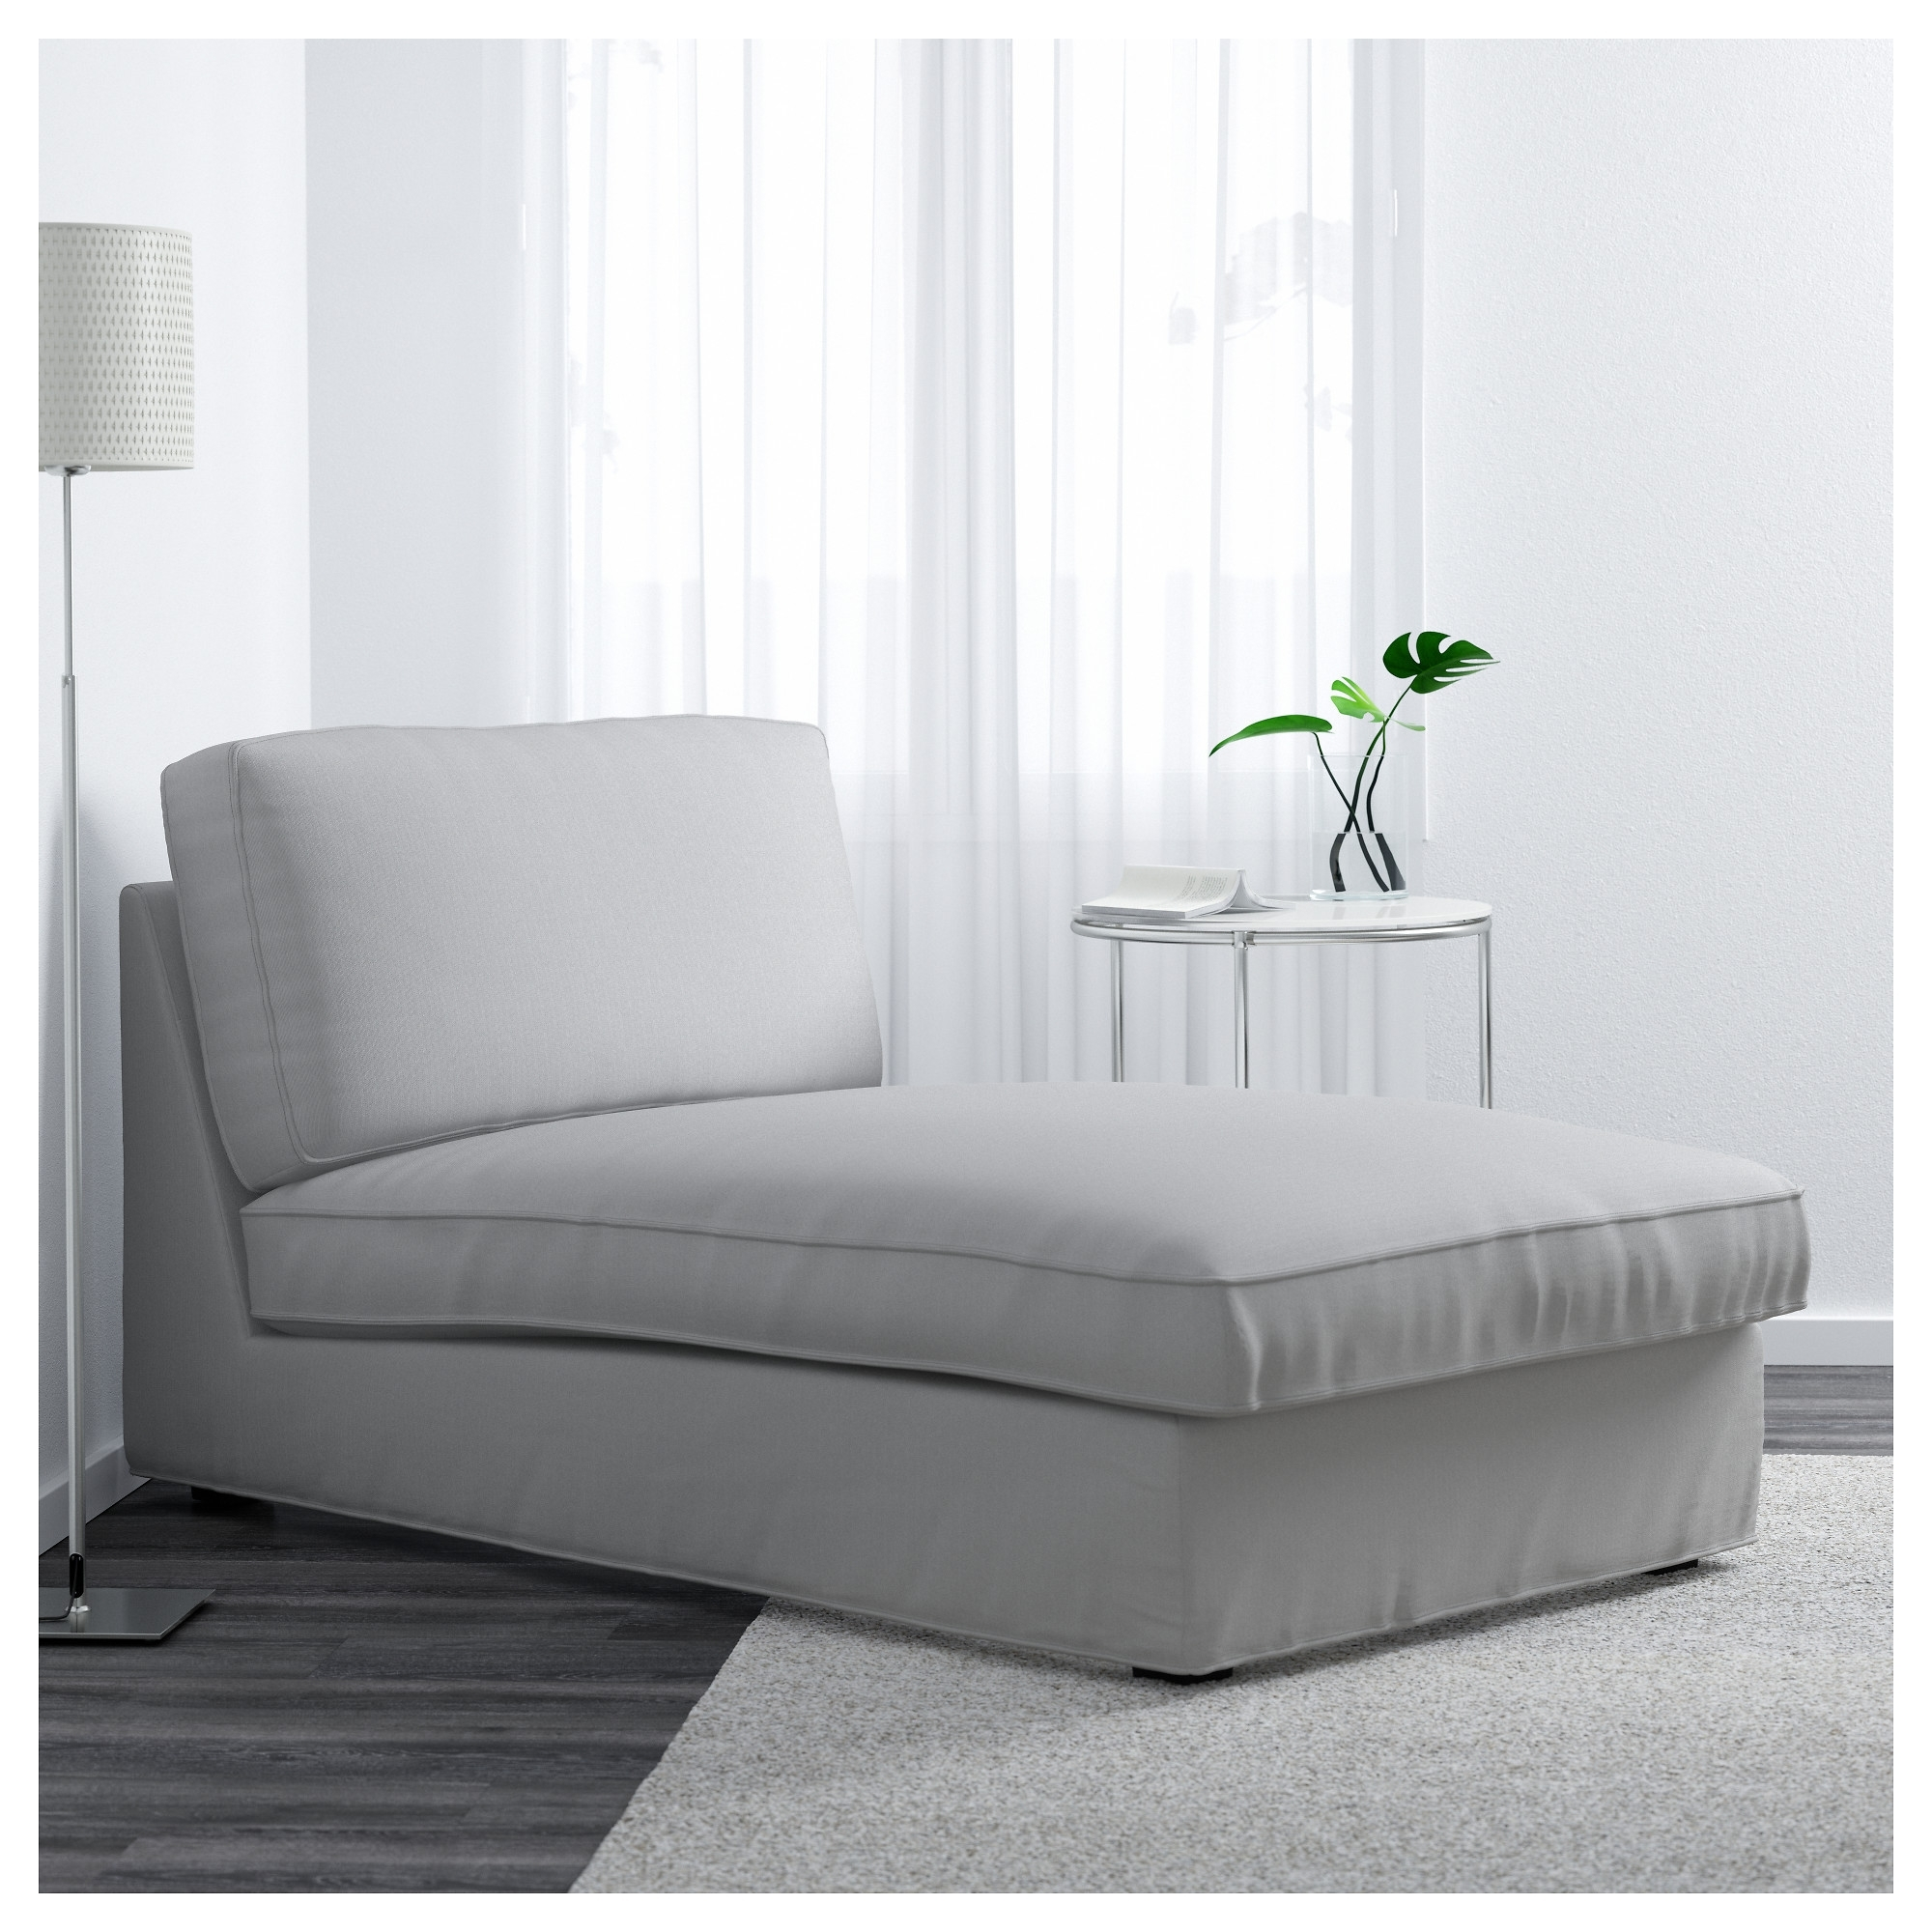 Ikea Lounge Chair 15 Ideas Of Ikea Chaise Lounge Chairs